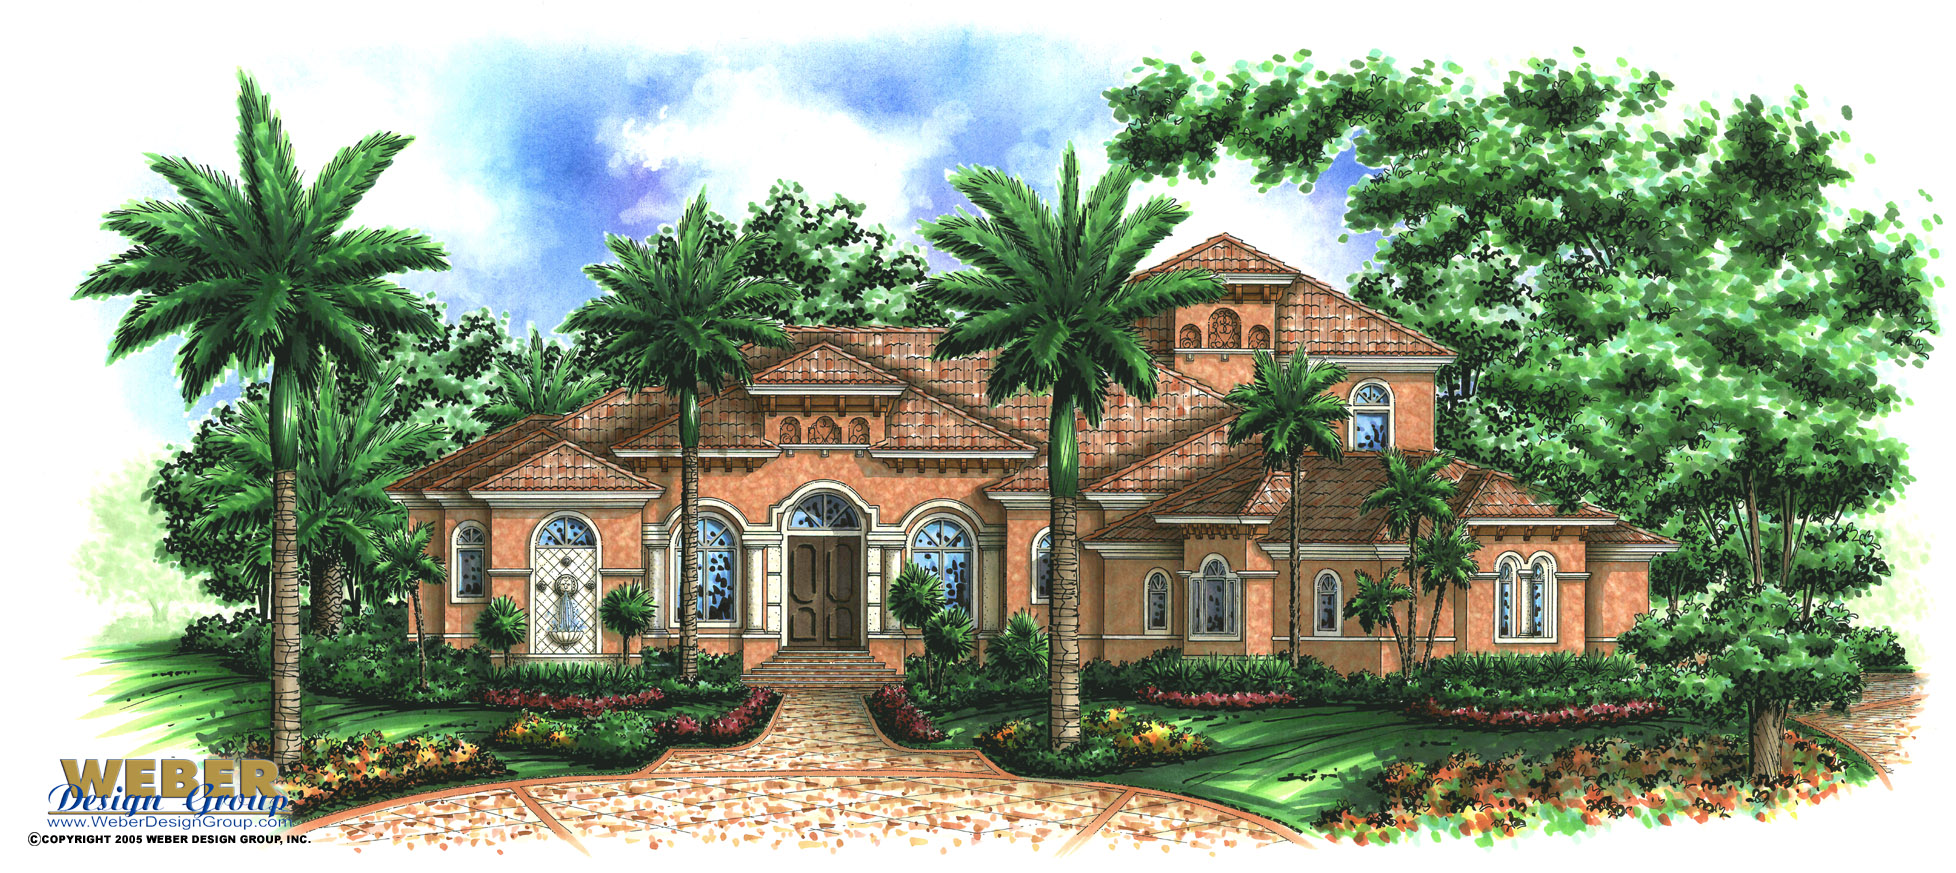 Tuscan house plan coastal mediterranean style golf course for Weber design group